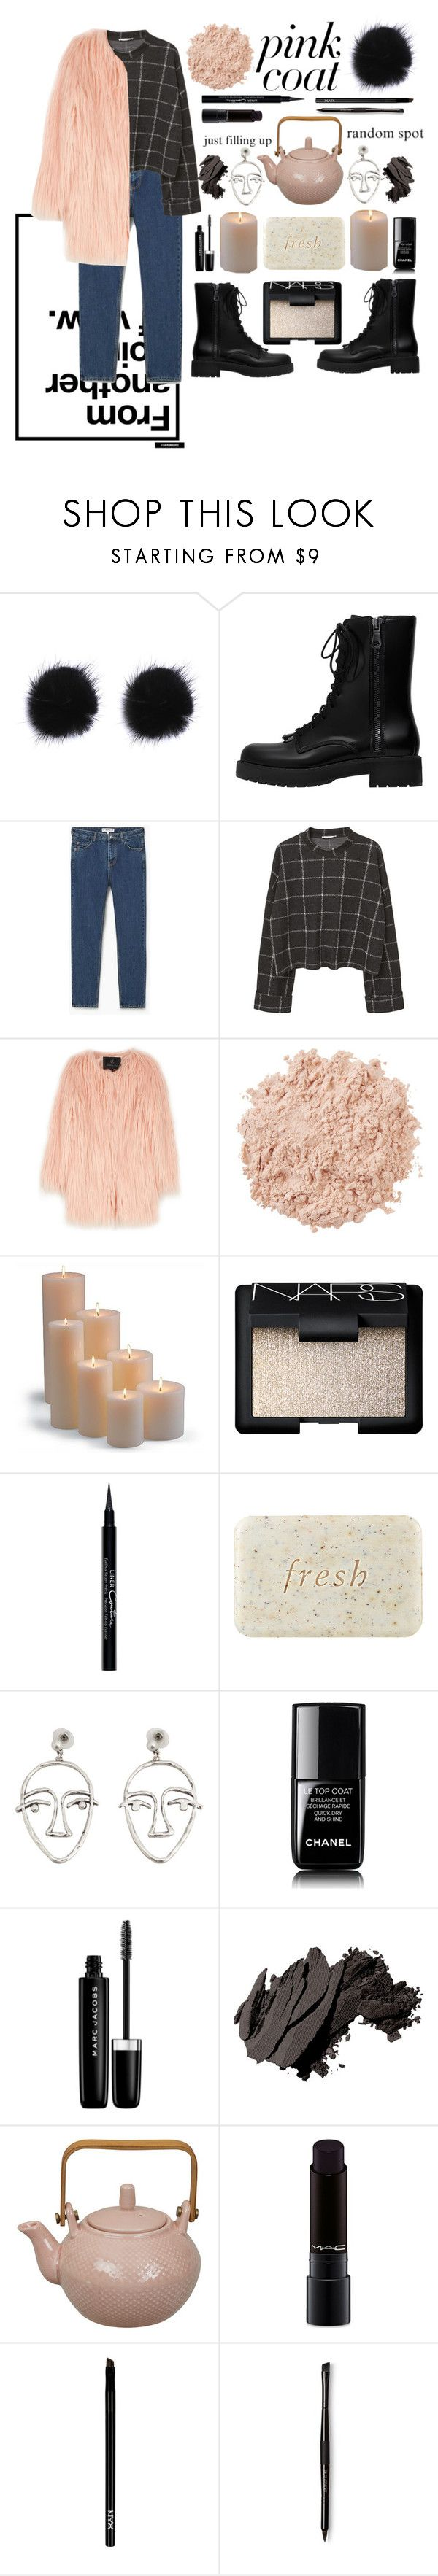 """""""pink coat"""" by lotussss ❤ liked on Polyvore featuring MANGO, Unreal Fur, La Mer, Frontgate, NARS Cosmetics, Givenchy, Fresh, Chanel, Marc Jacobs and Bobbi Brown Cosmetics"""